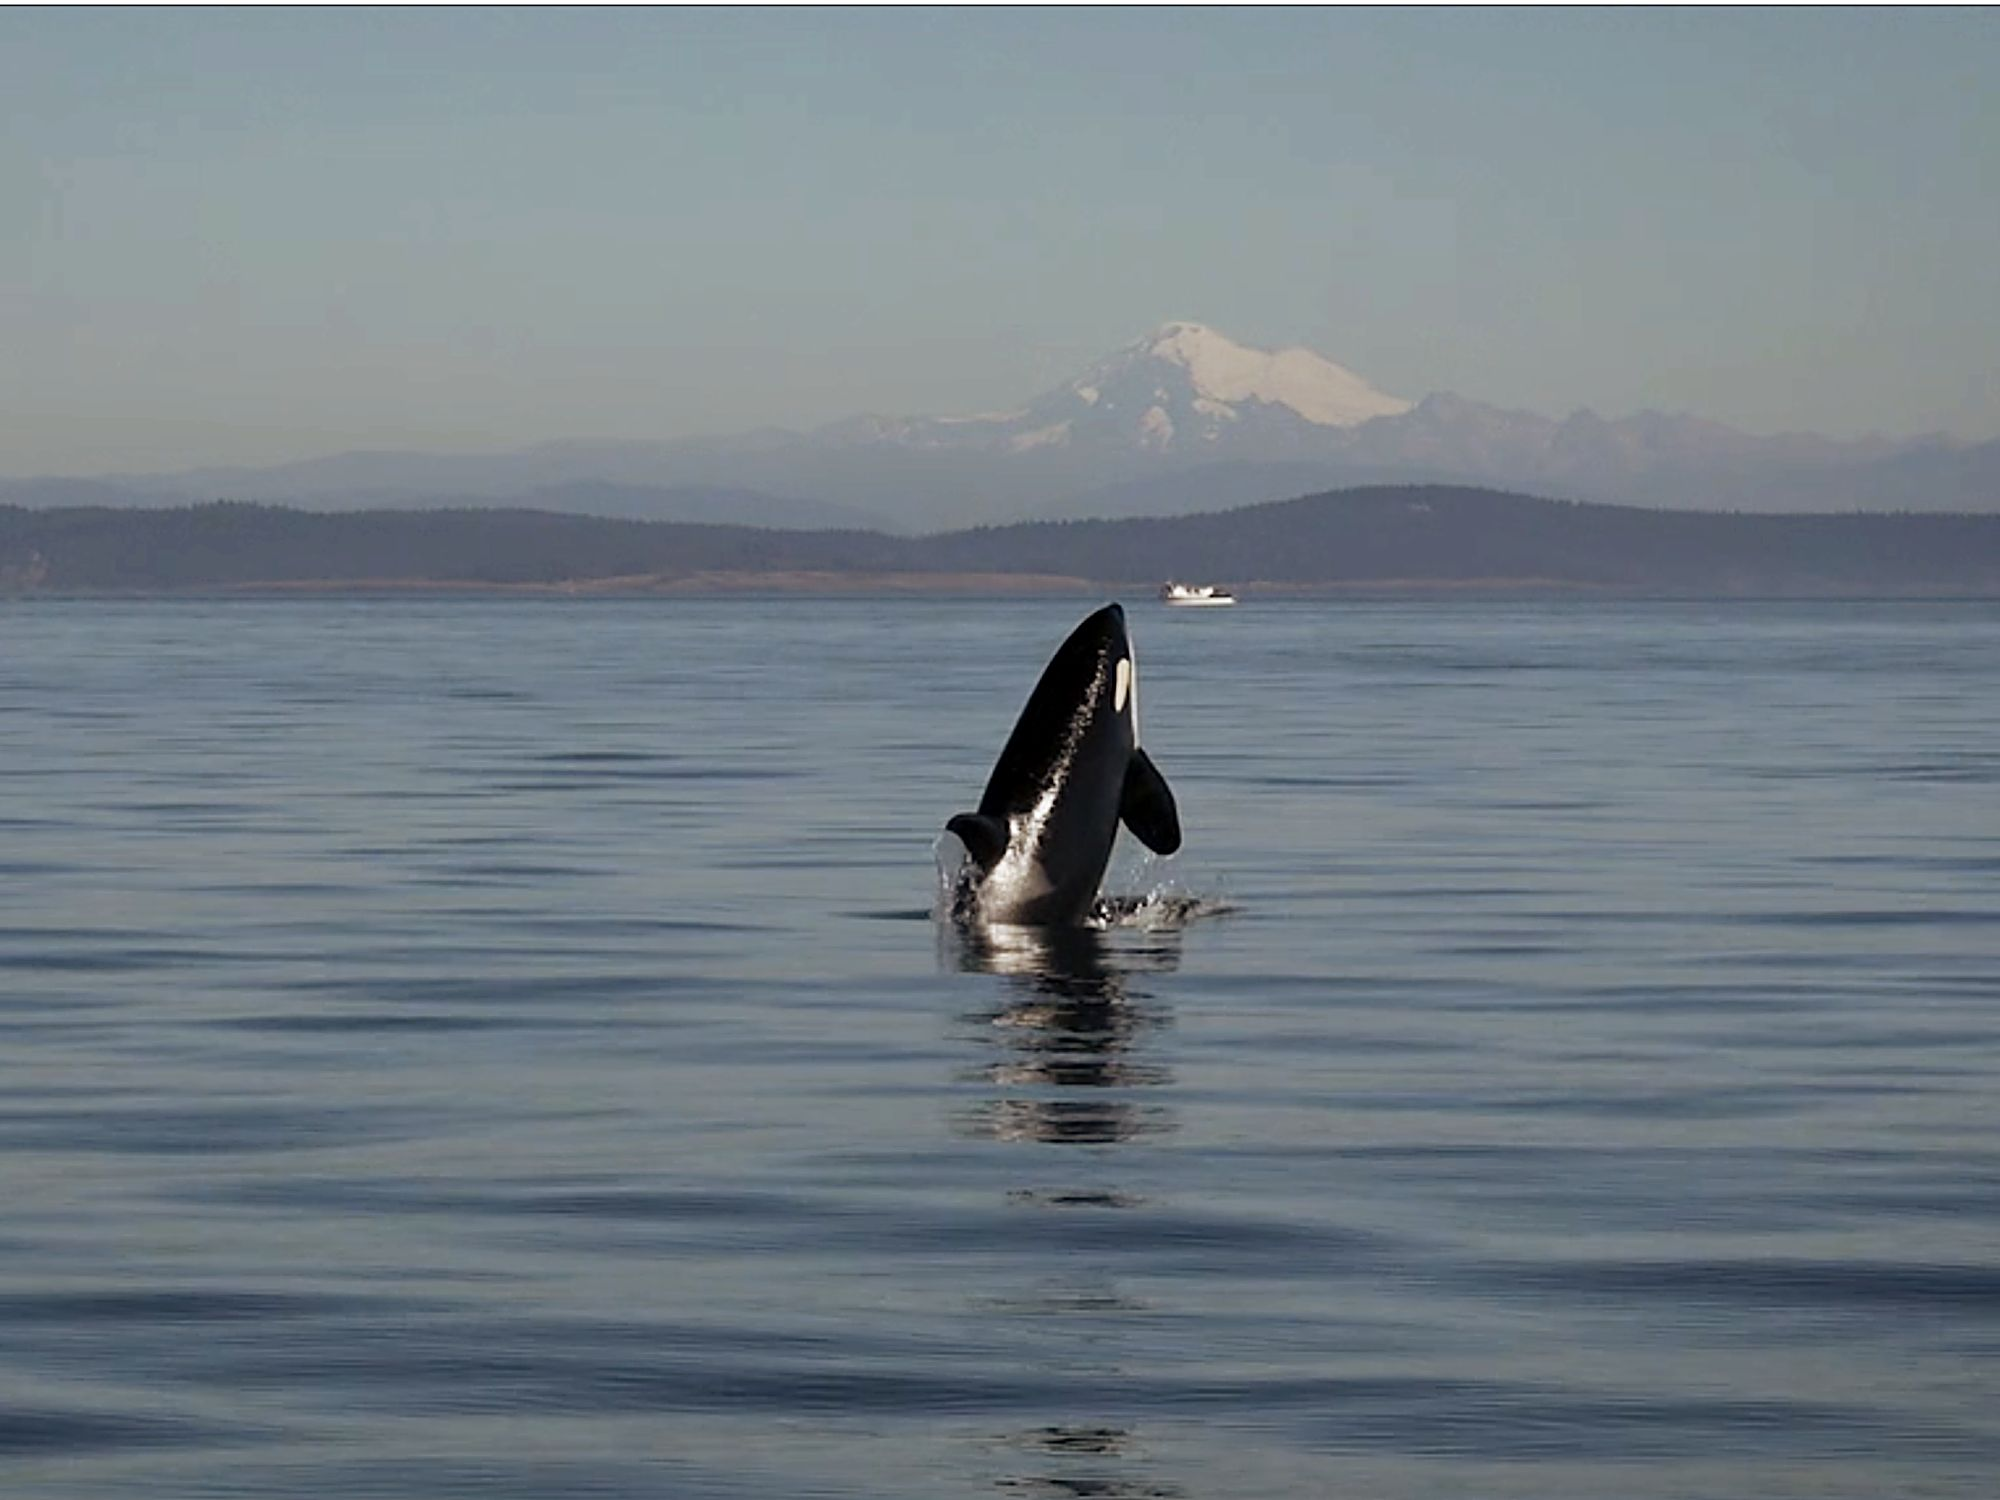 Parkite's killer whale documentary is 'Long Gone Wild,' and will be released July 16